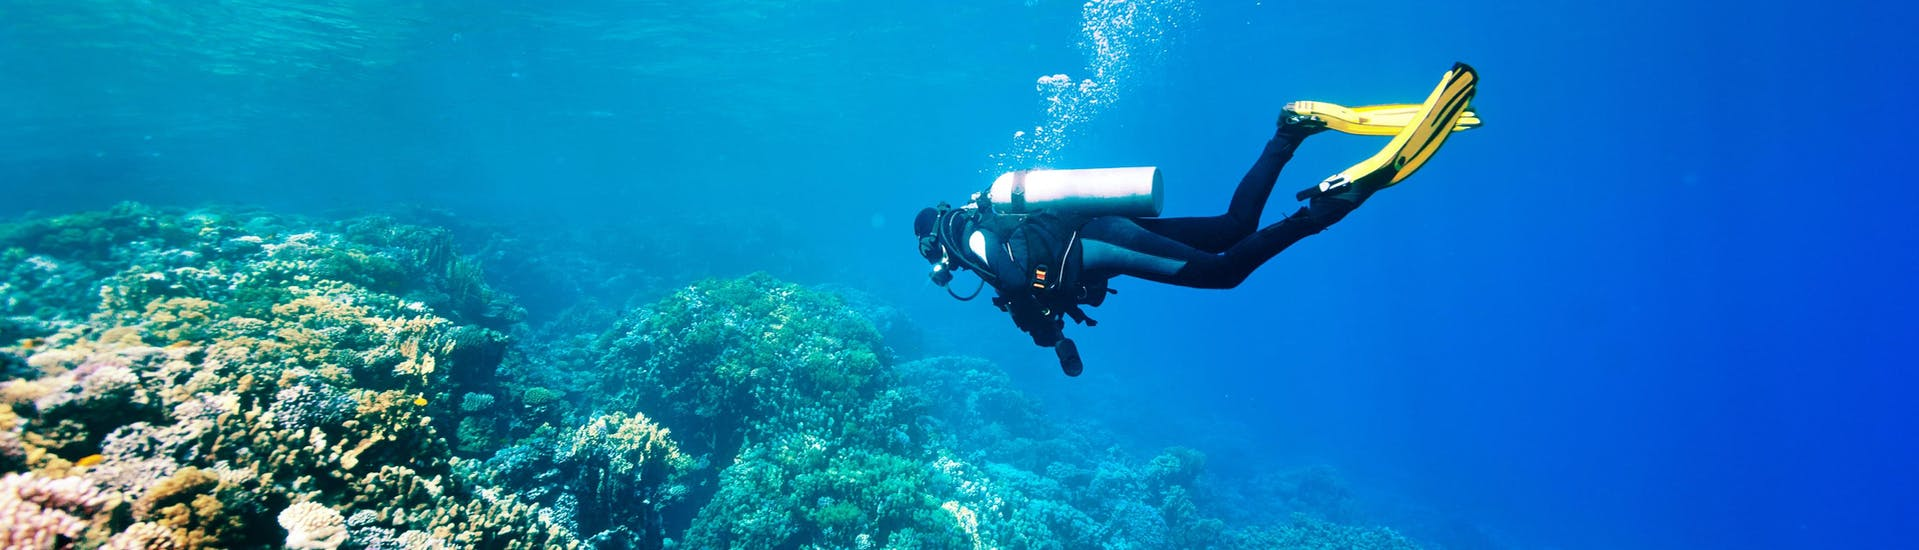 A scuba diver is exploring a reef while scuba diving in the scuba diving destination of Pula area.